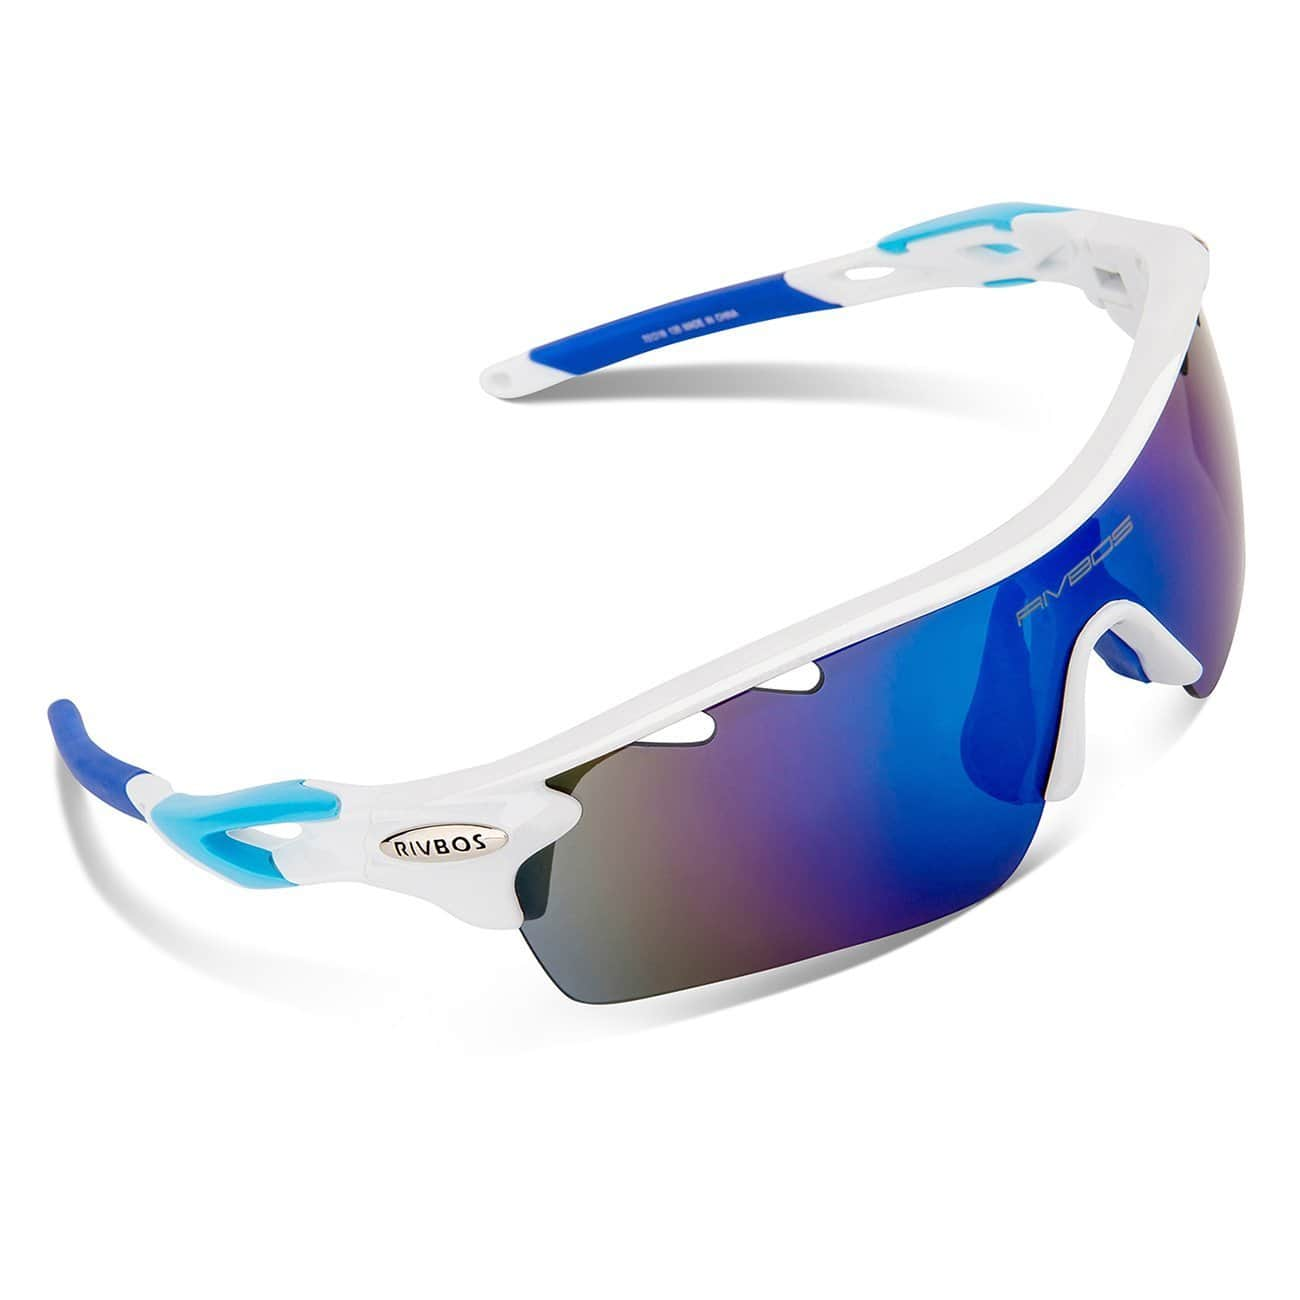 Rivbos 801 Polarized Sports Sunglasses $12.99-$16.89AC